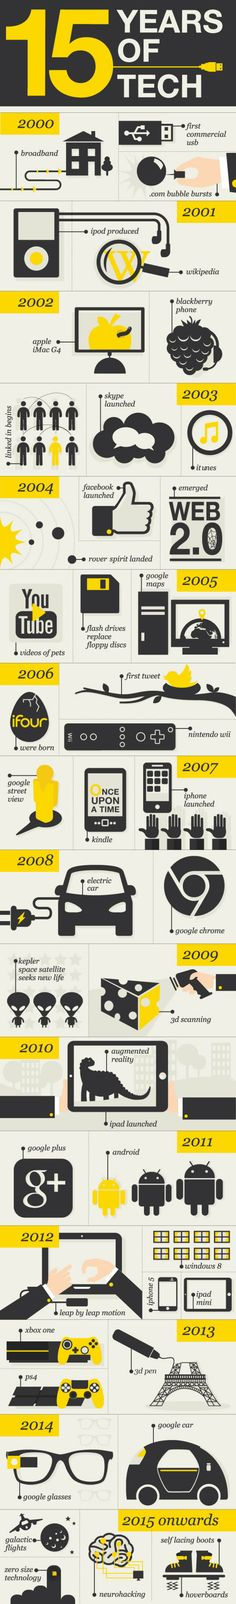 We have all come a long ways since using the Commodore 64 and actually having to remember people's telephone numbers. Technology since then has absolutely skyrocketed in the new millenial. The future is now here and it's only going to get more exciting! #infographic